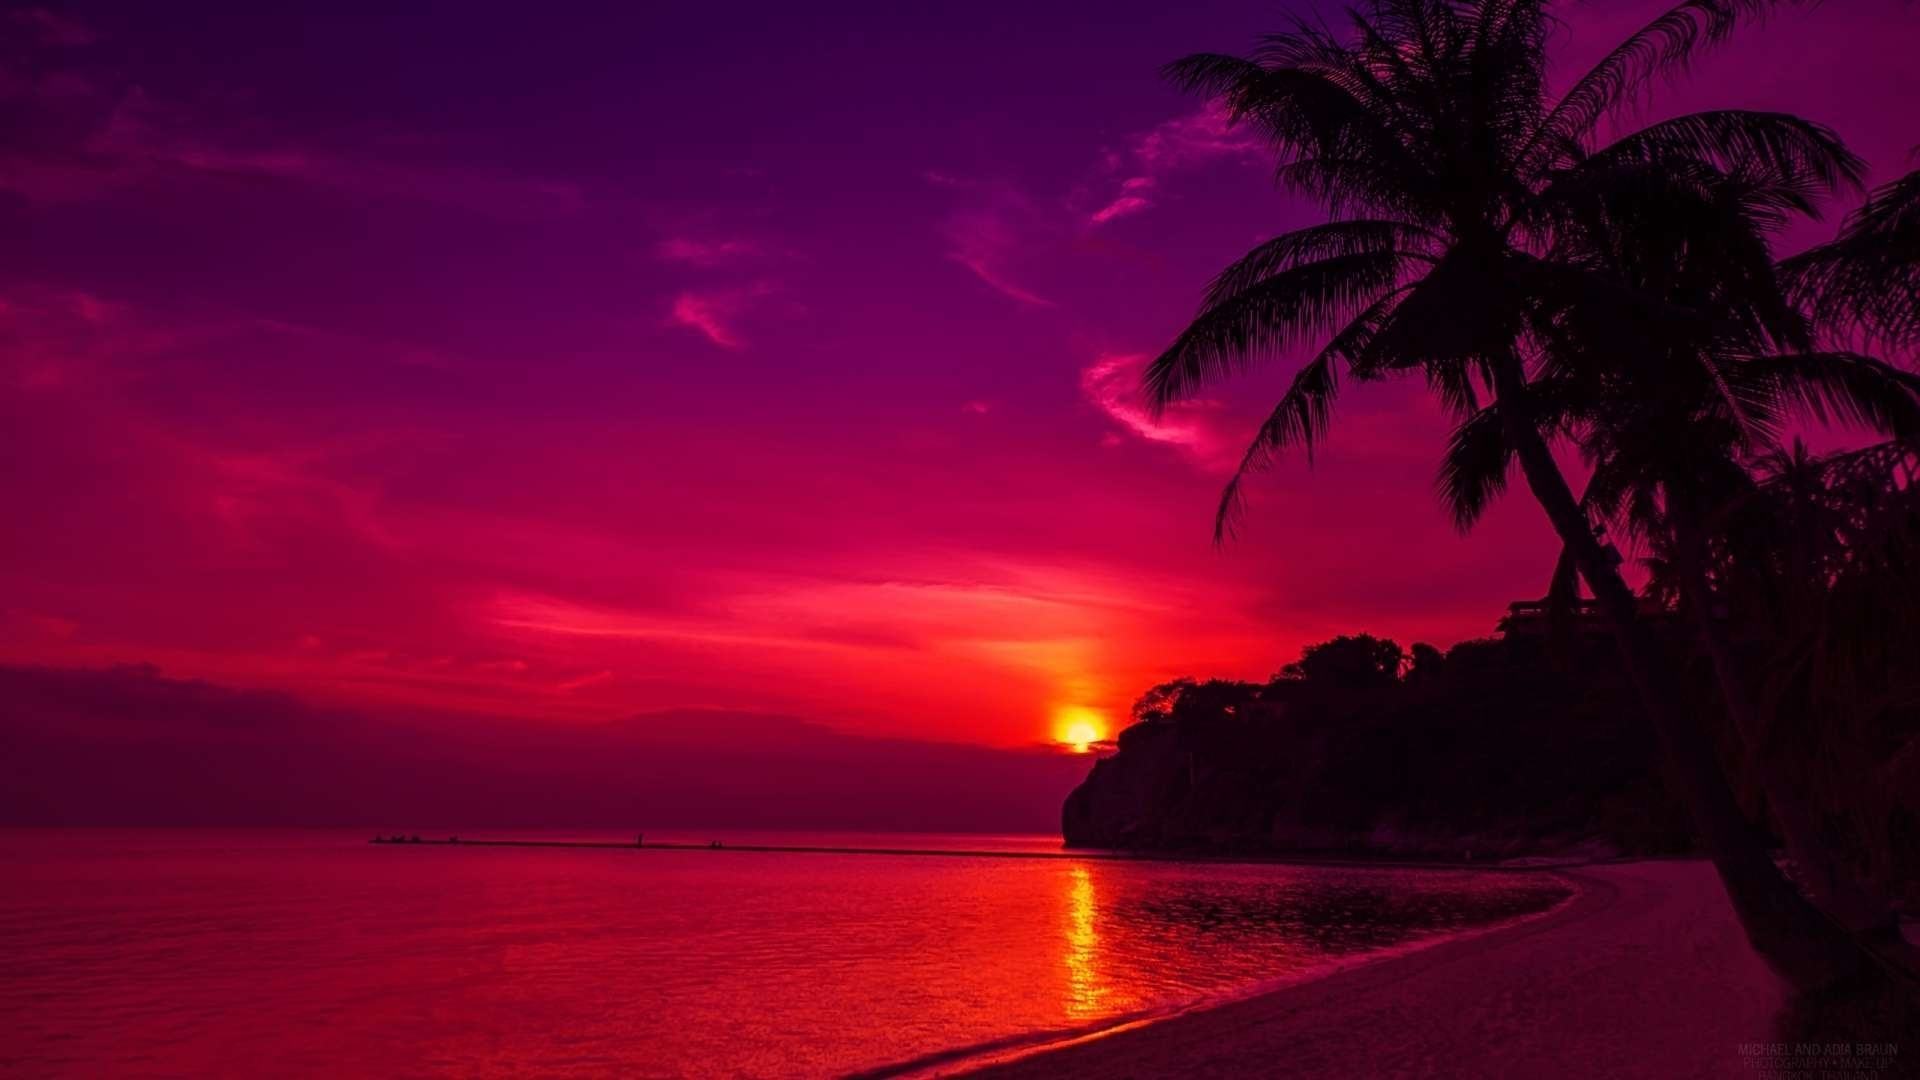 sunset wallpapers hd - wallpaper cave